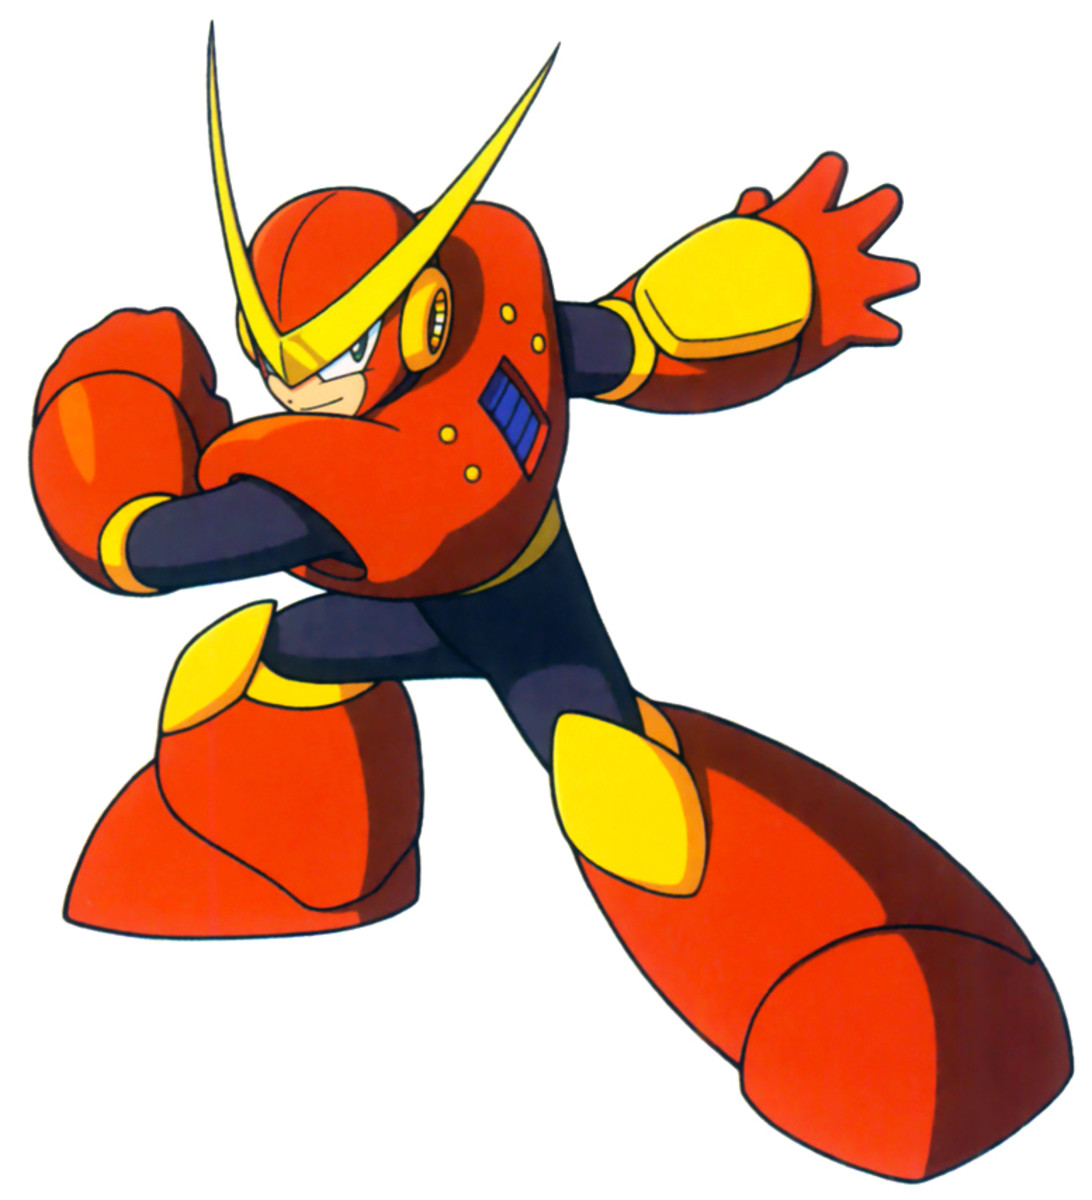 Quick Man is a speedster in the mold of comic book heroes such as The Flash and Quicksilver.